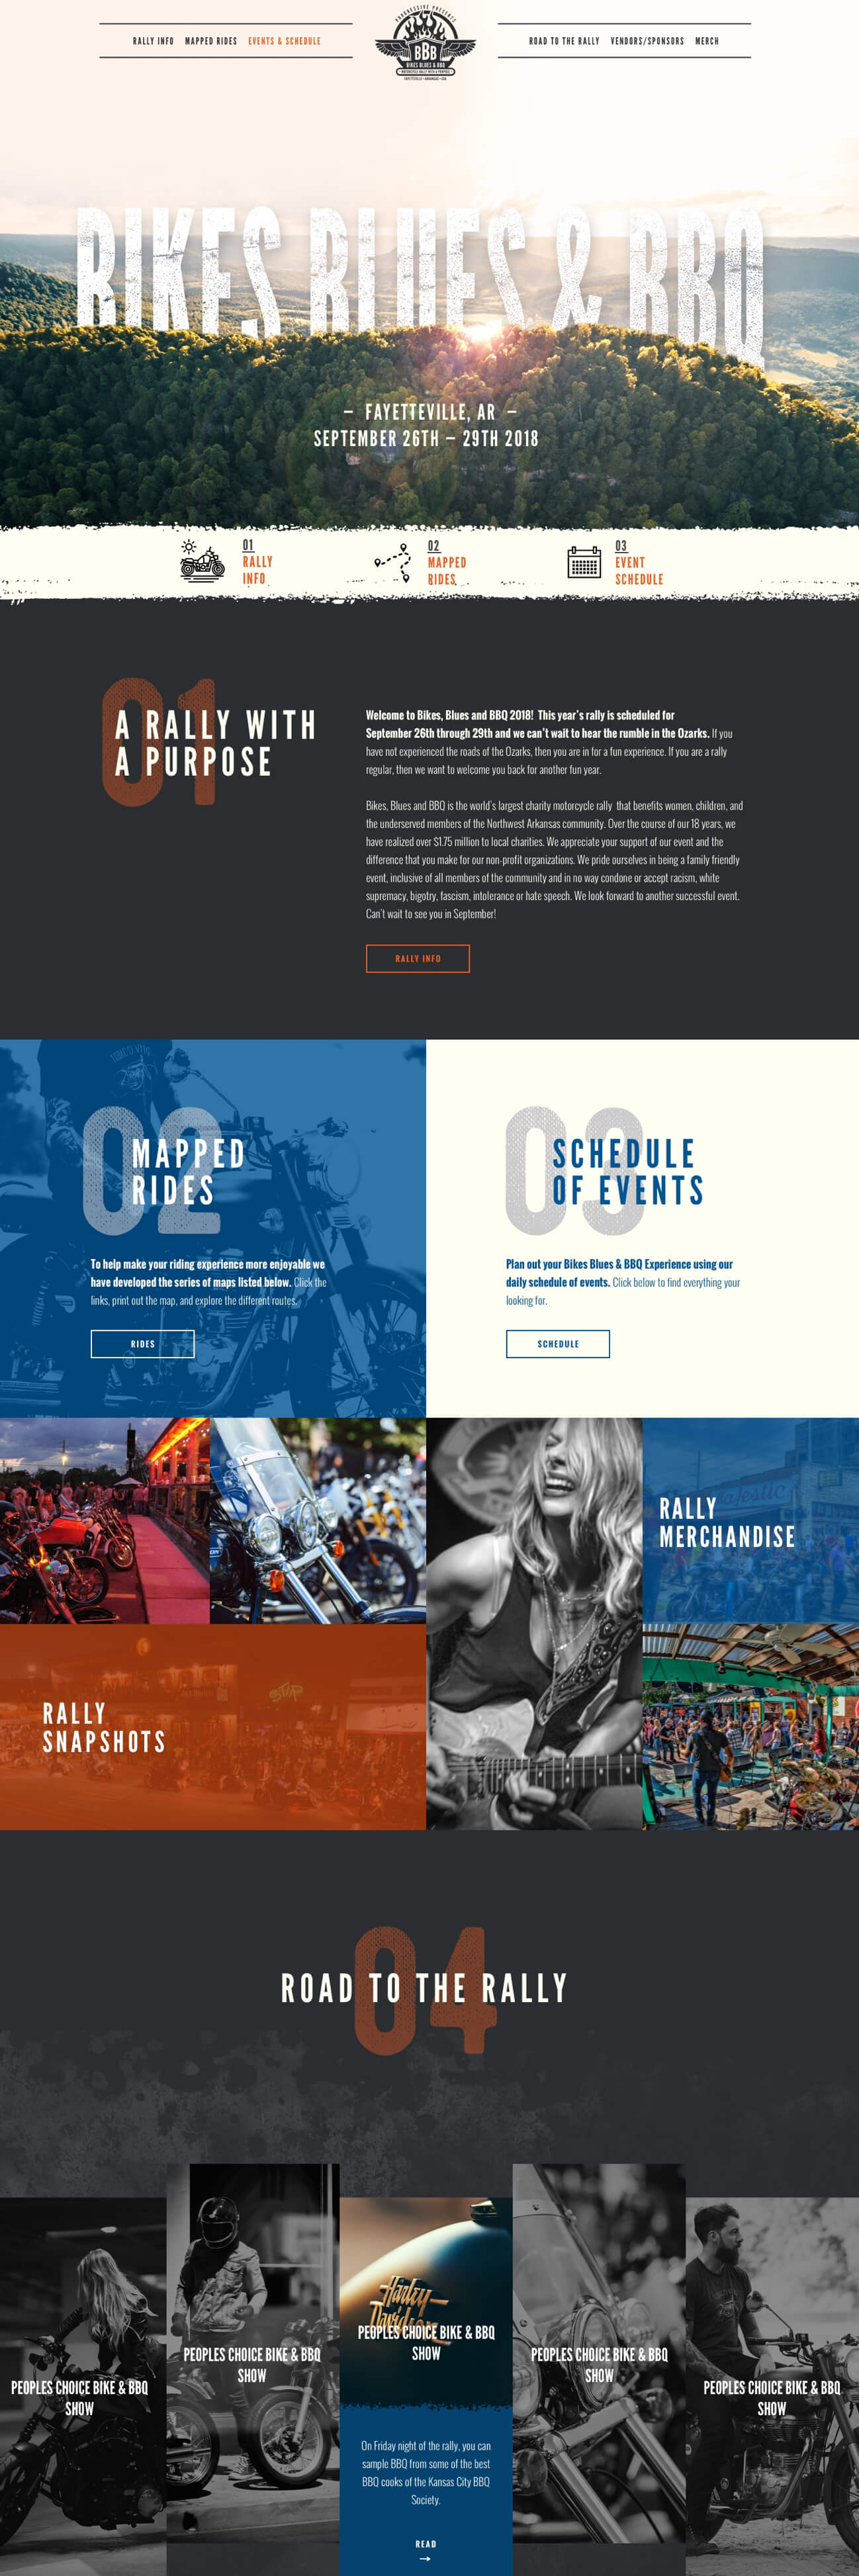 Bikes Blues and BBQ Home Page Layout